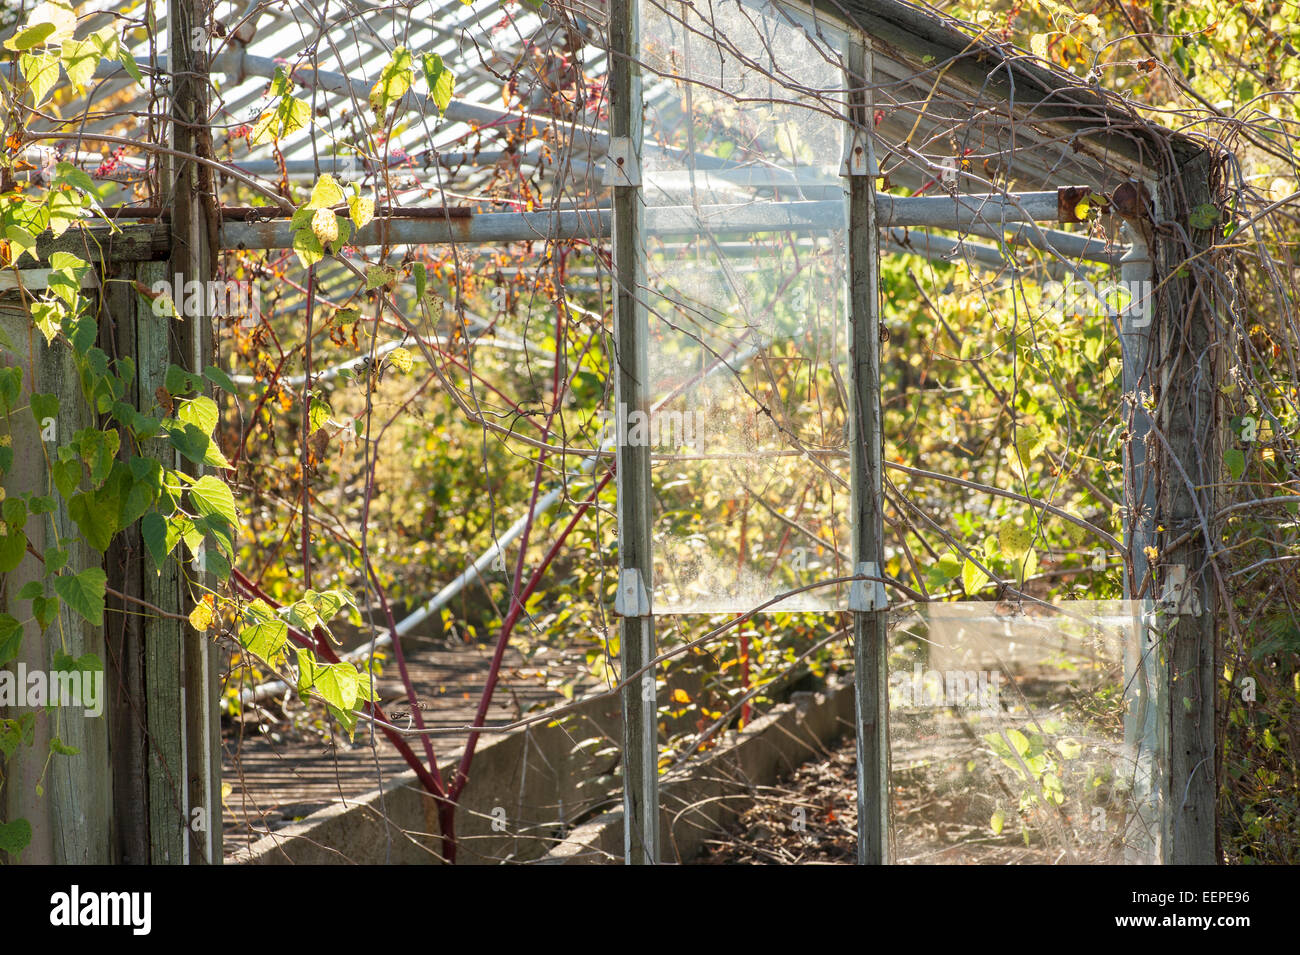 Dilapidated greenhouse over run with weeds - Stock Image